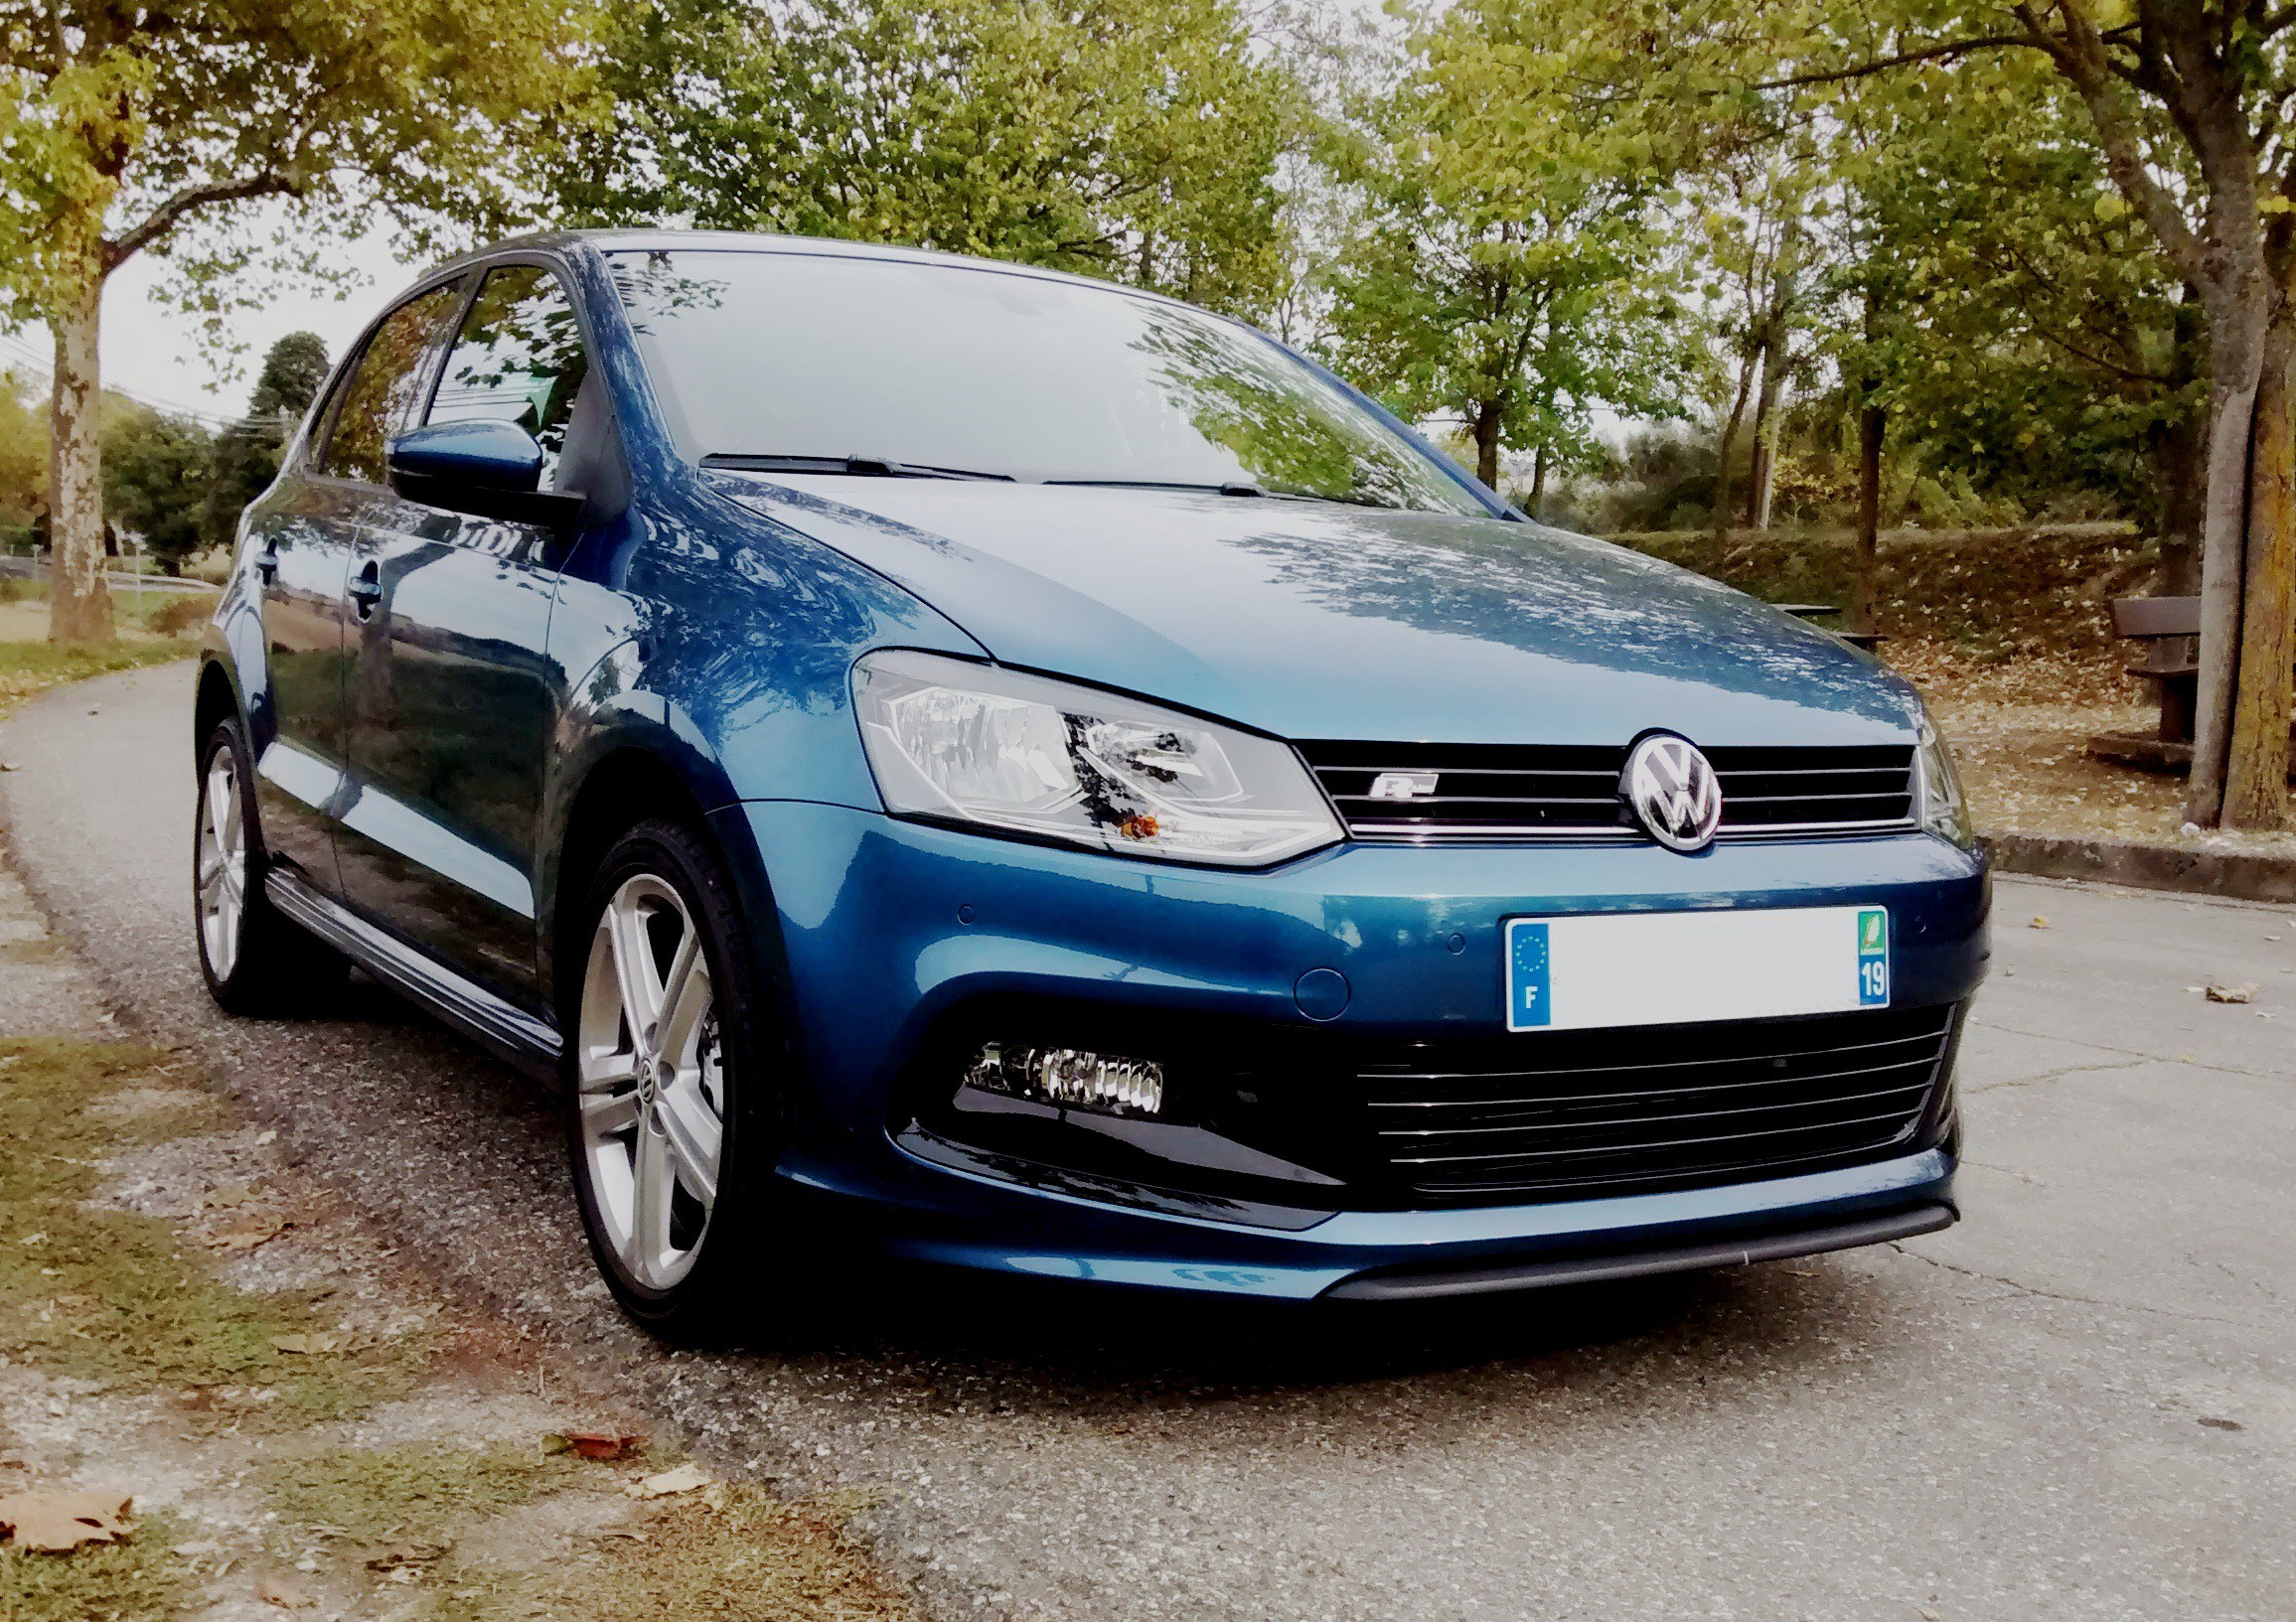 Sortie pack r line polo 2015 polo volkswagen forum for R line pack esterno polo